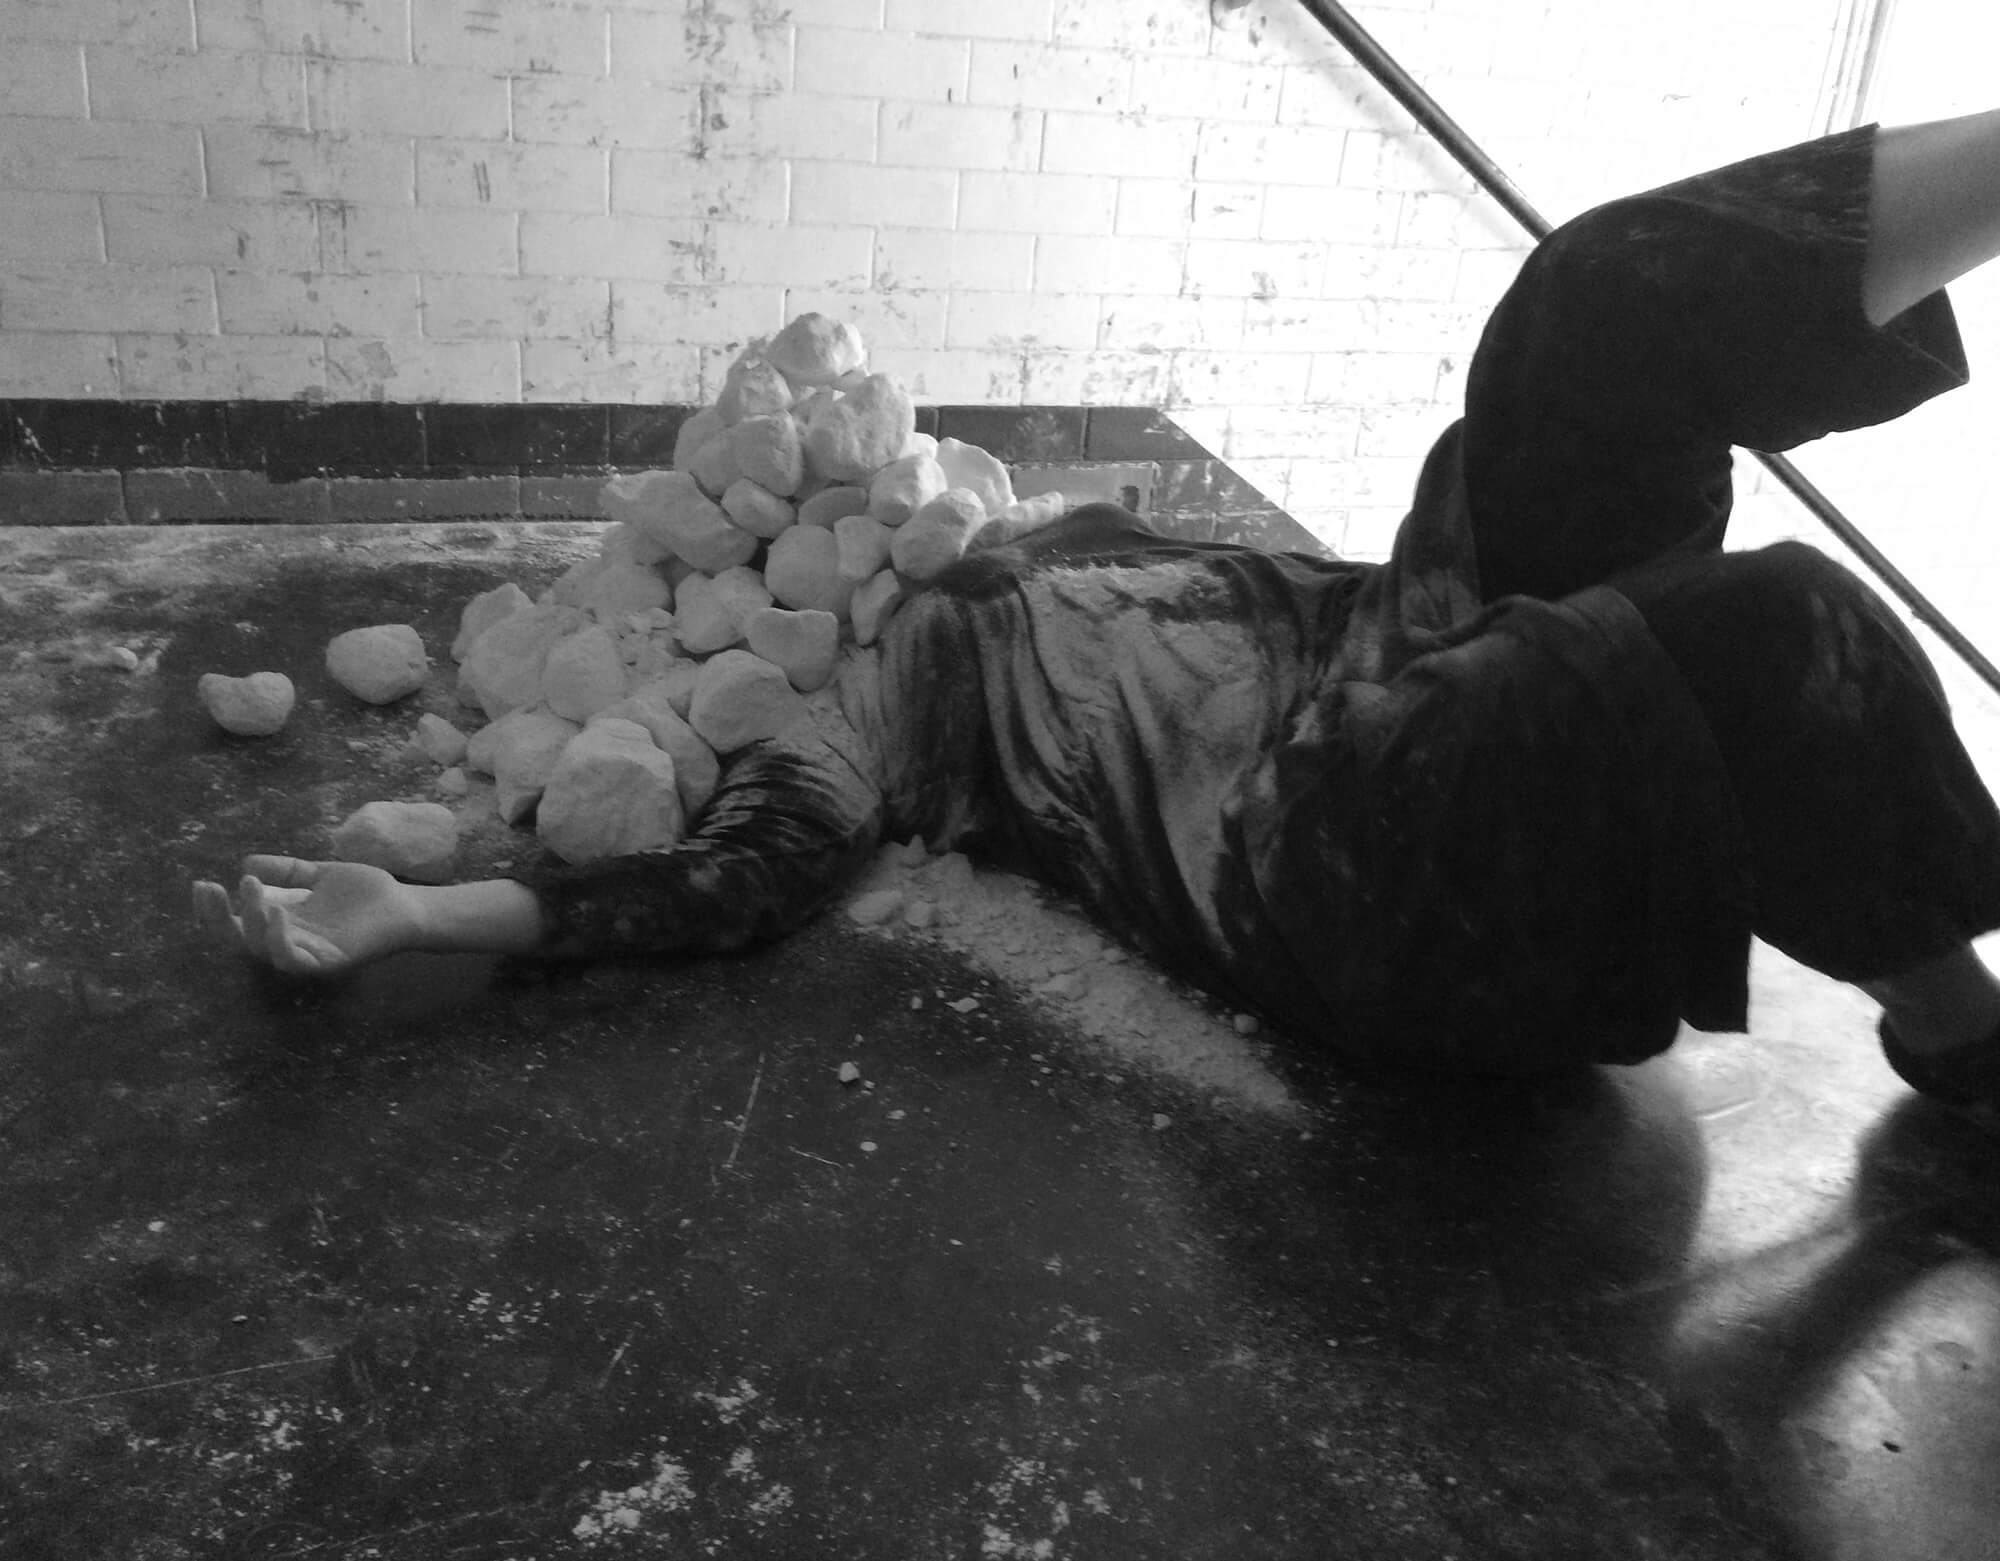 a person lying at the top of a flight of stairs with a pile of small chalk rocks covering their head